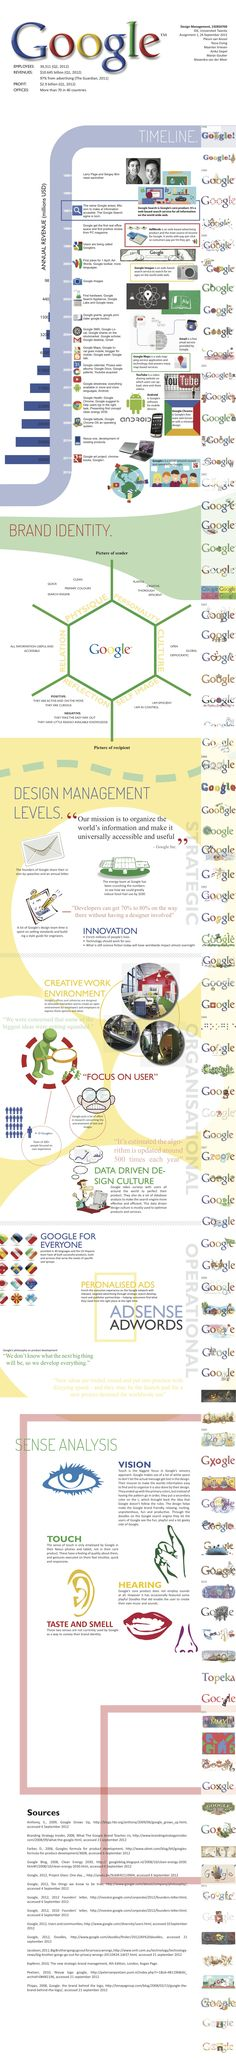 The Google brand infographic (group project)